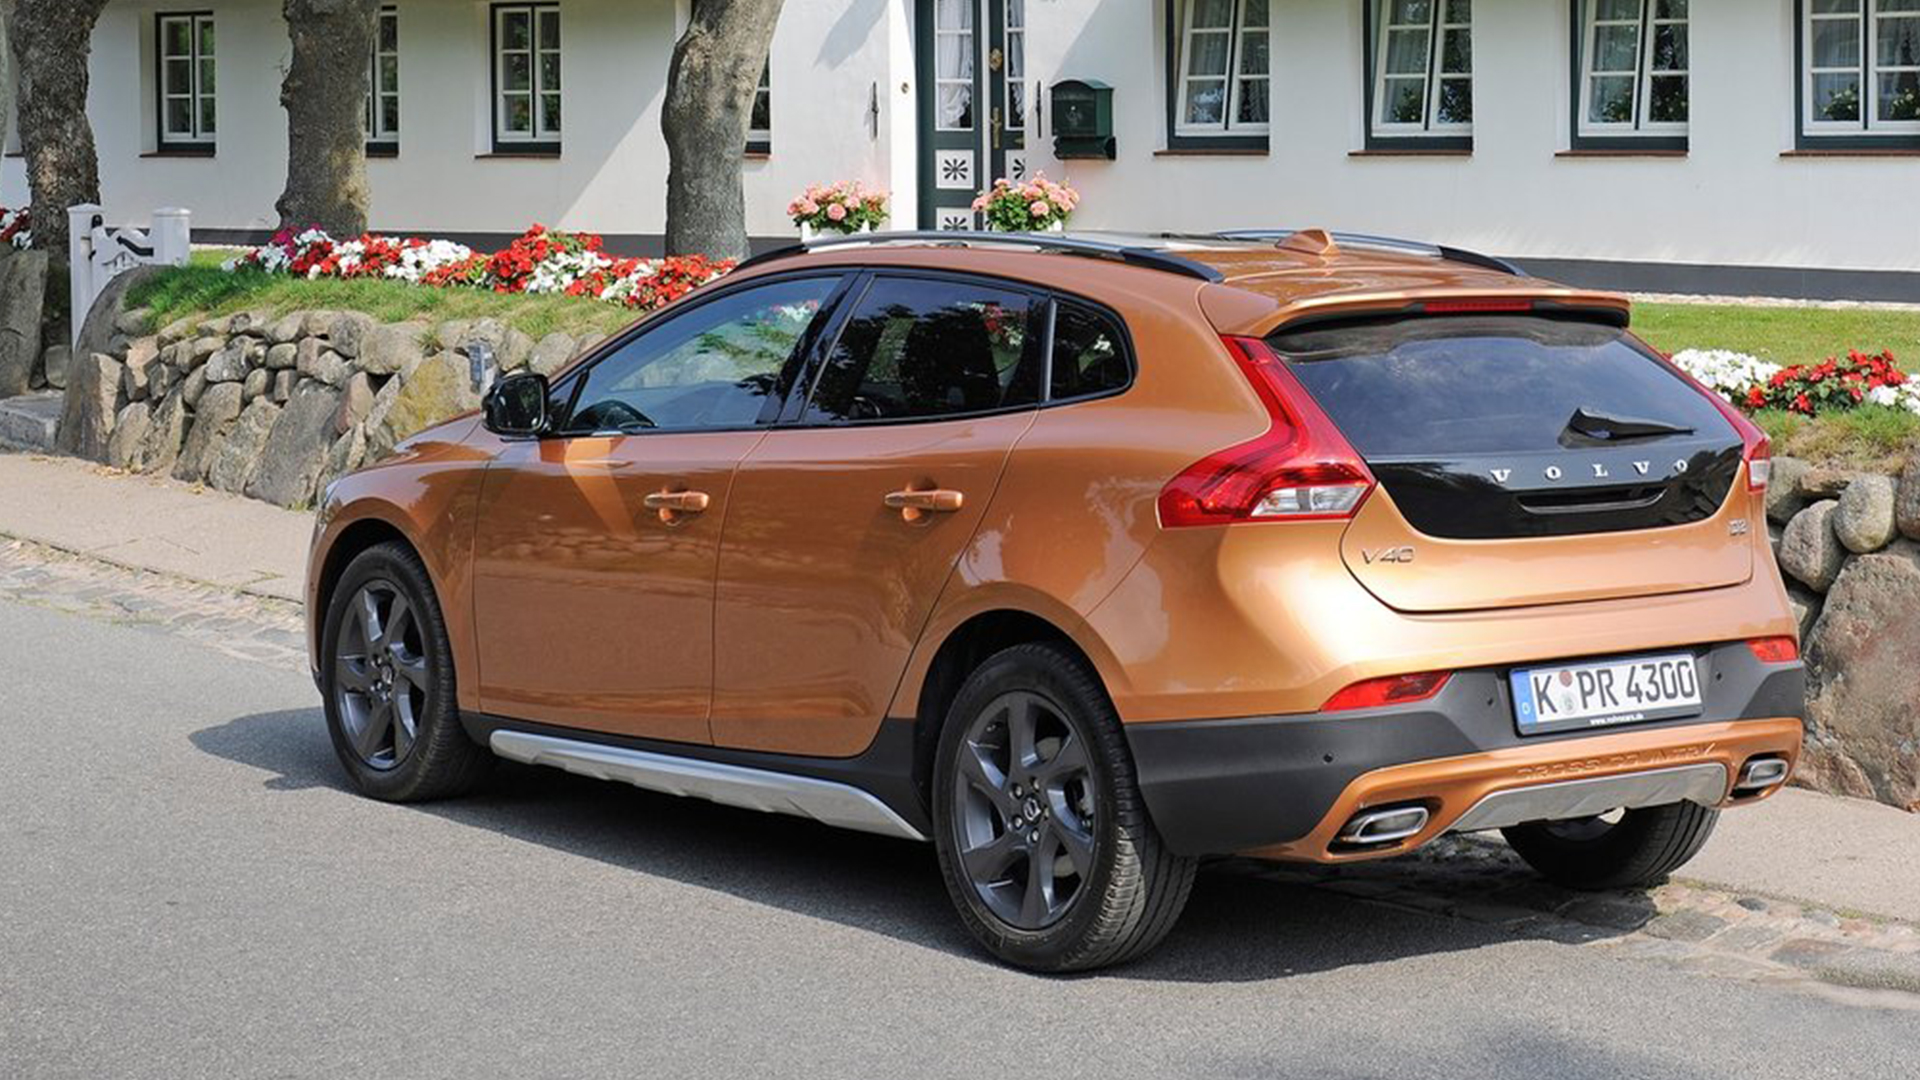 volvo v40 cross country petrol set up in india. Black Bedroom Furniture Sets. Home Design Ideas